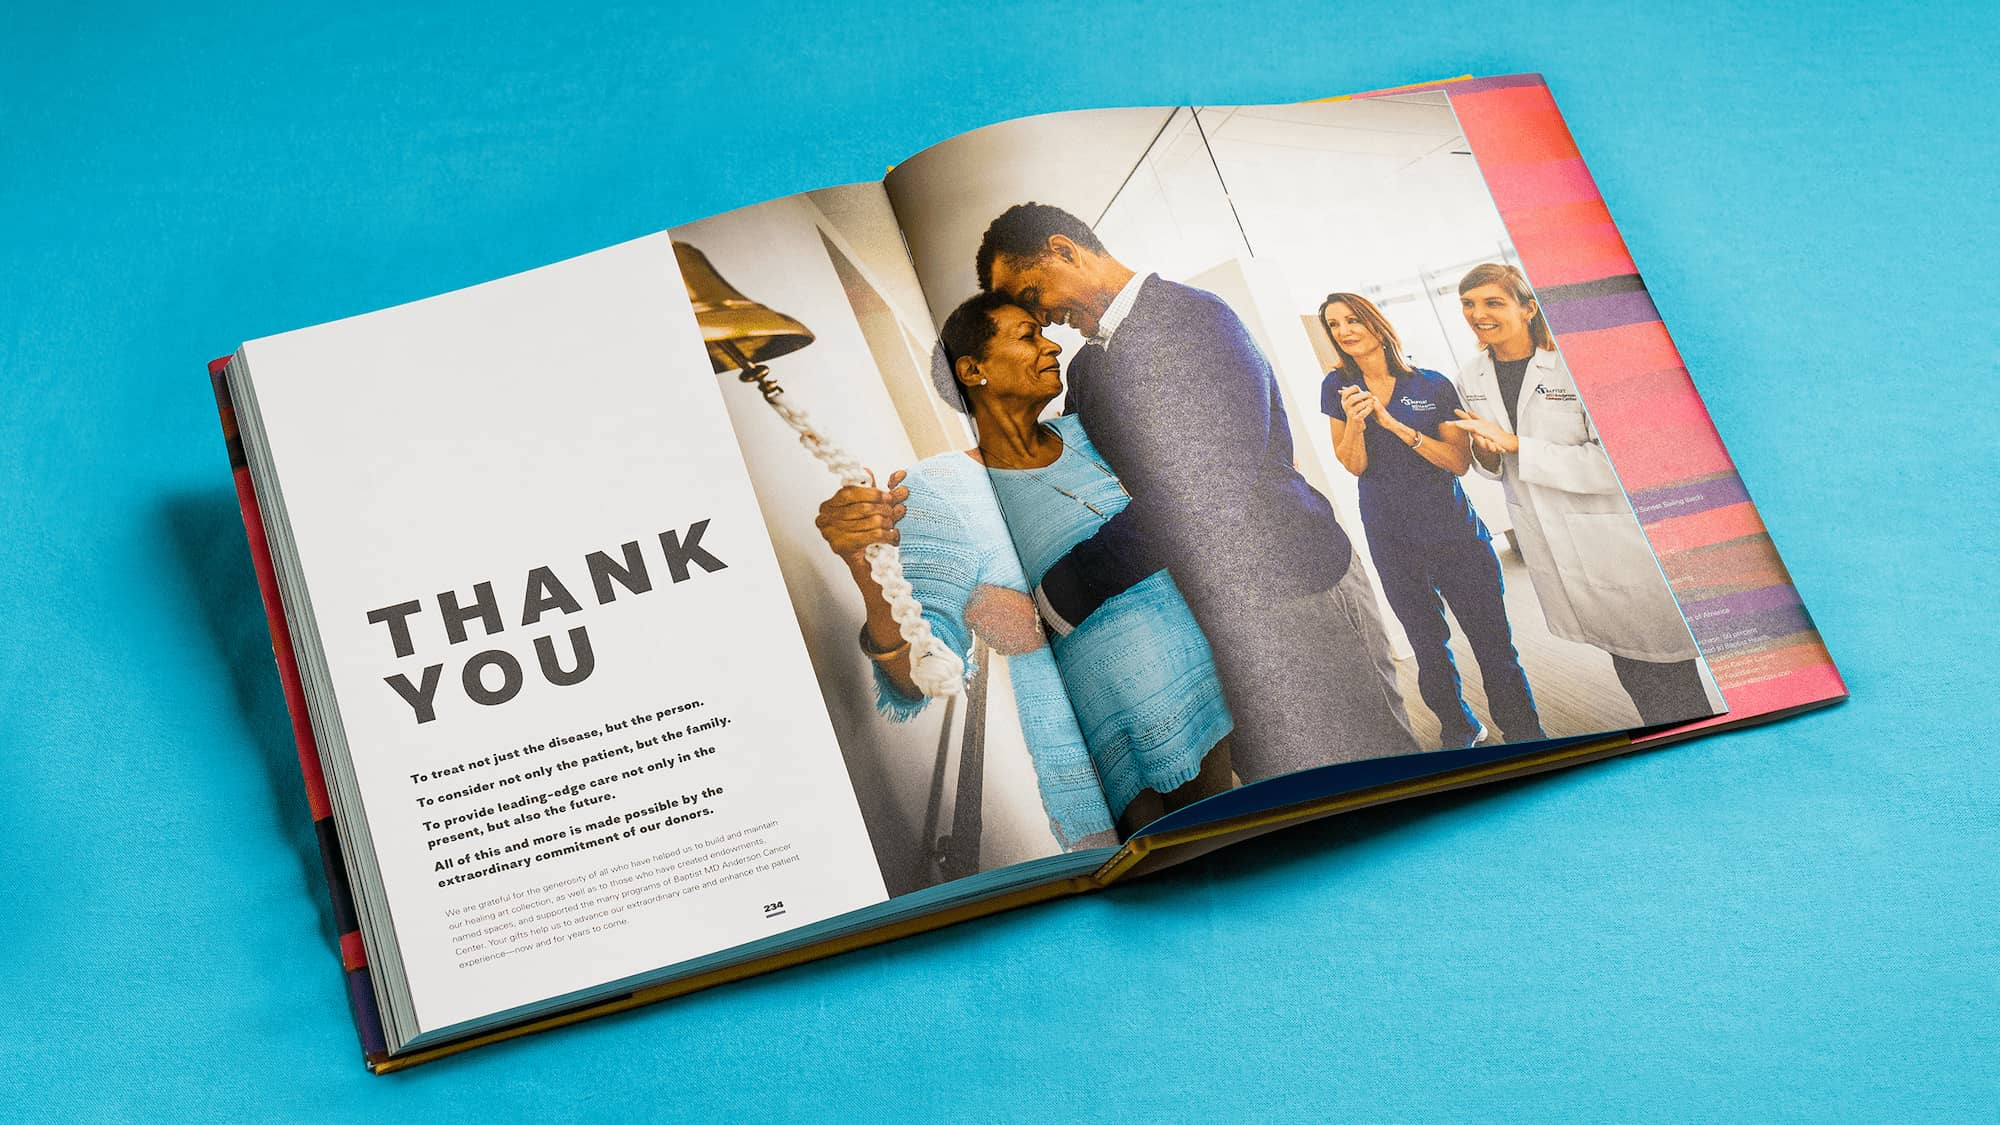 Spread of the book thanking donors with a heartfelt photo of a cancer survivor embraced by her husband